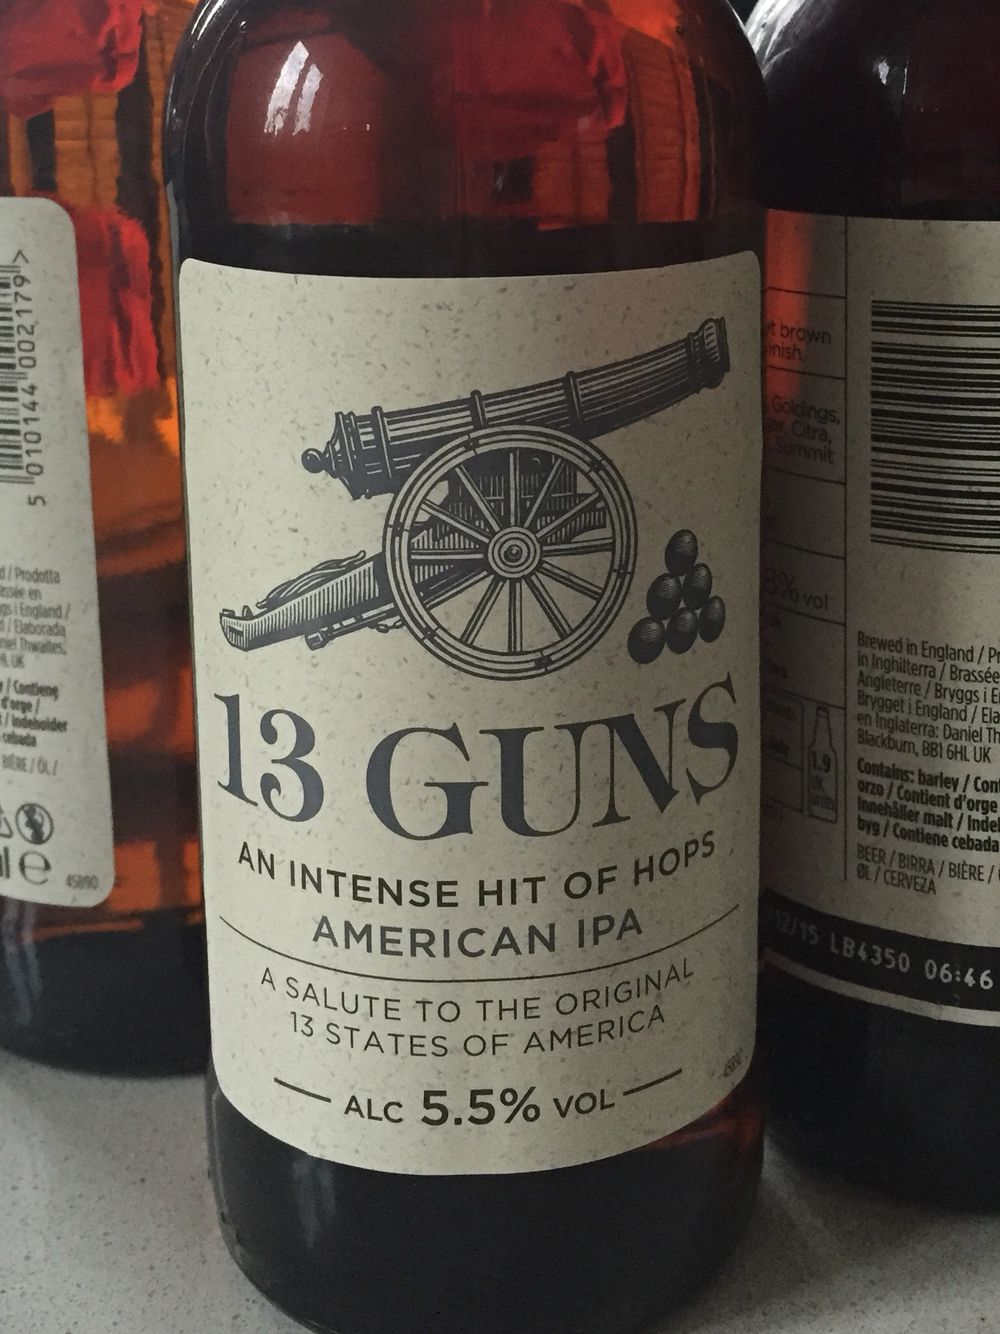 #84 Crafty Dan 13 Guns - Smooth but loads of hoppiness  5/5 (22/05/2015)